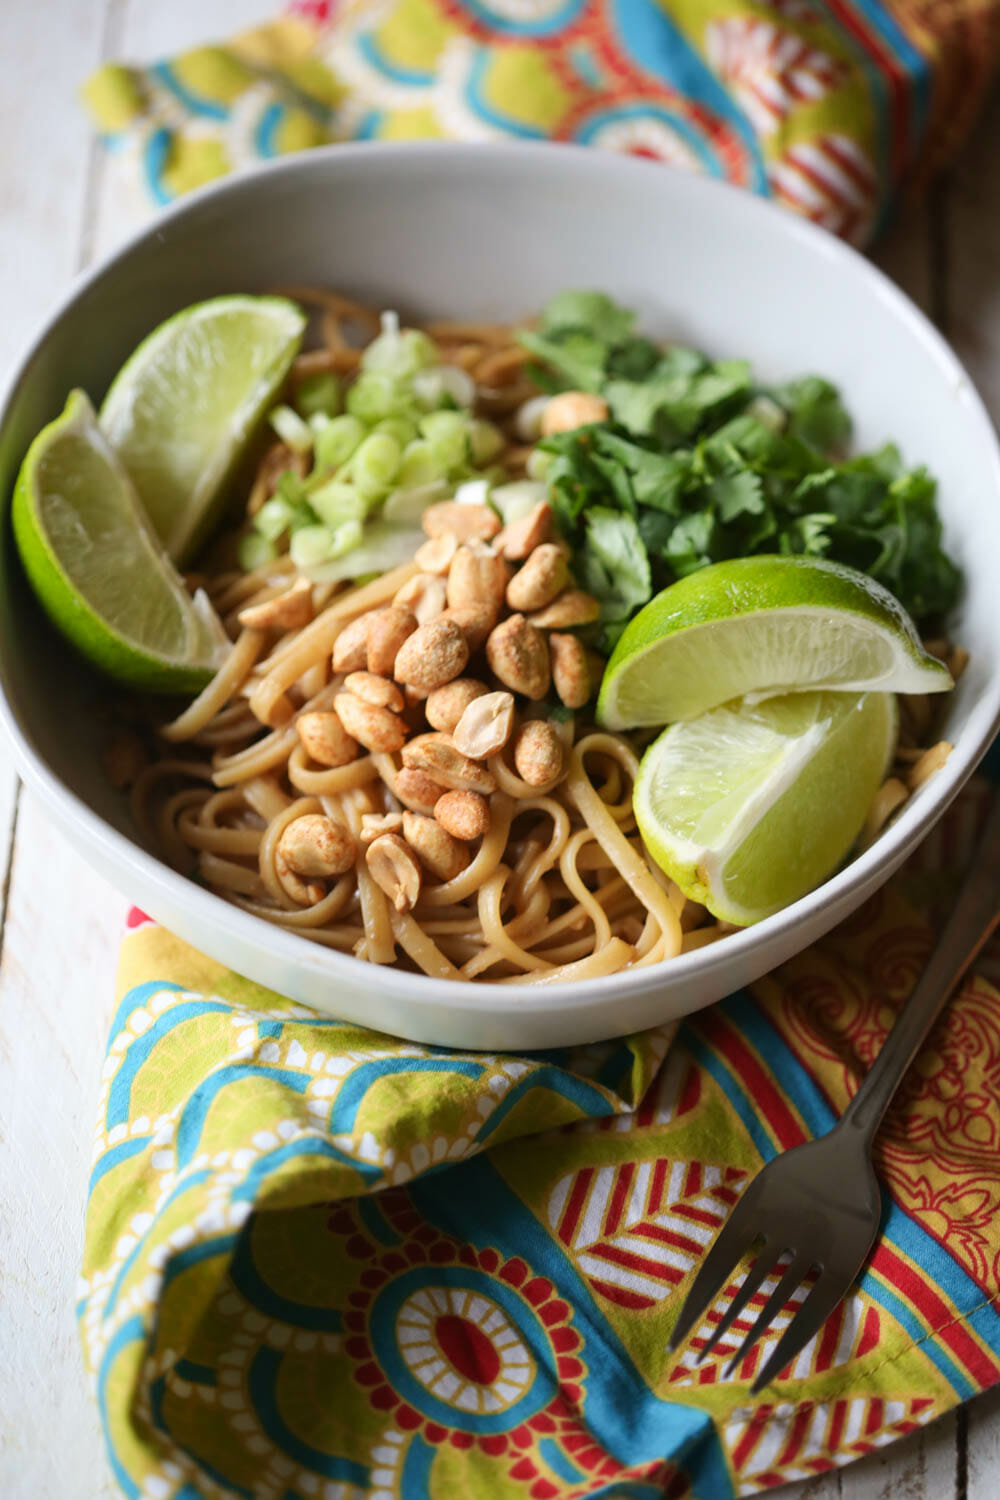 Thai Peanut Noodles from Our Best Bites